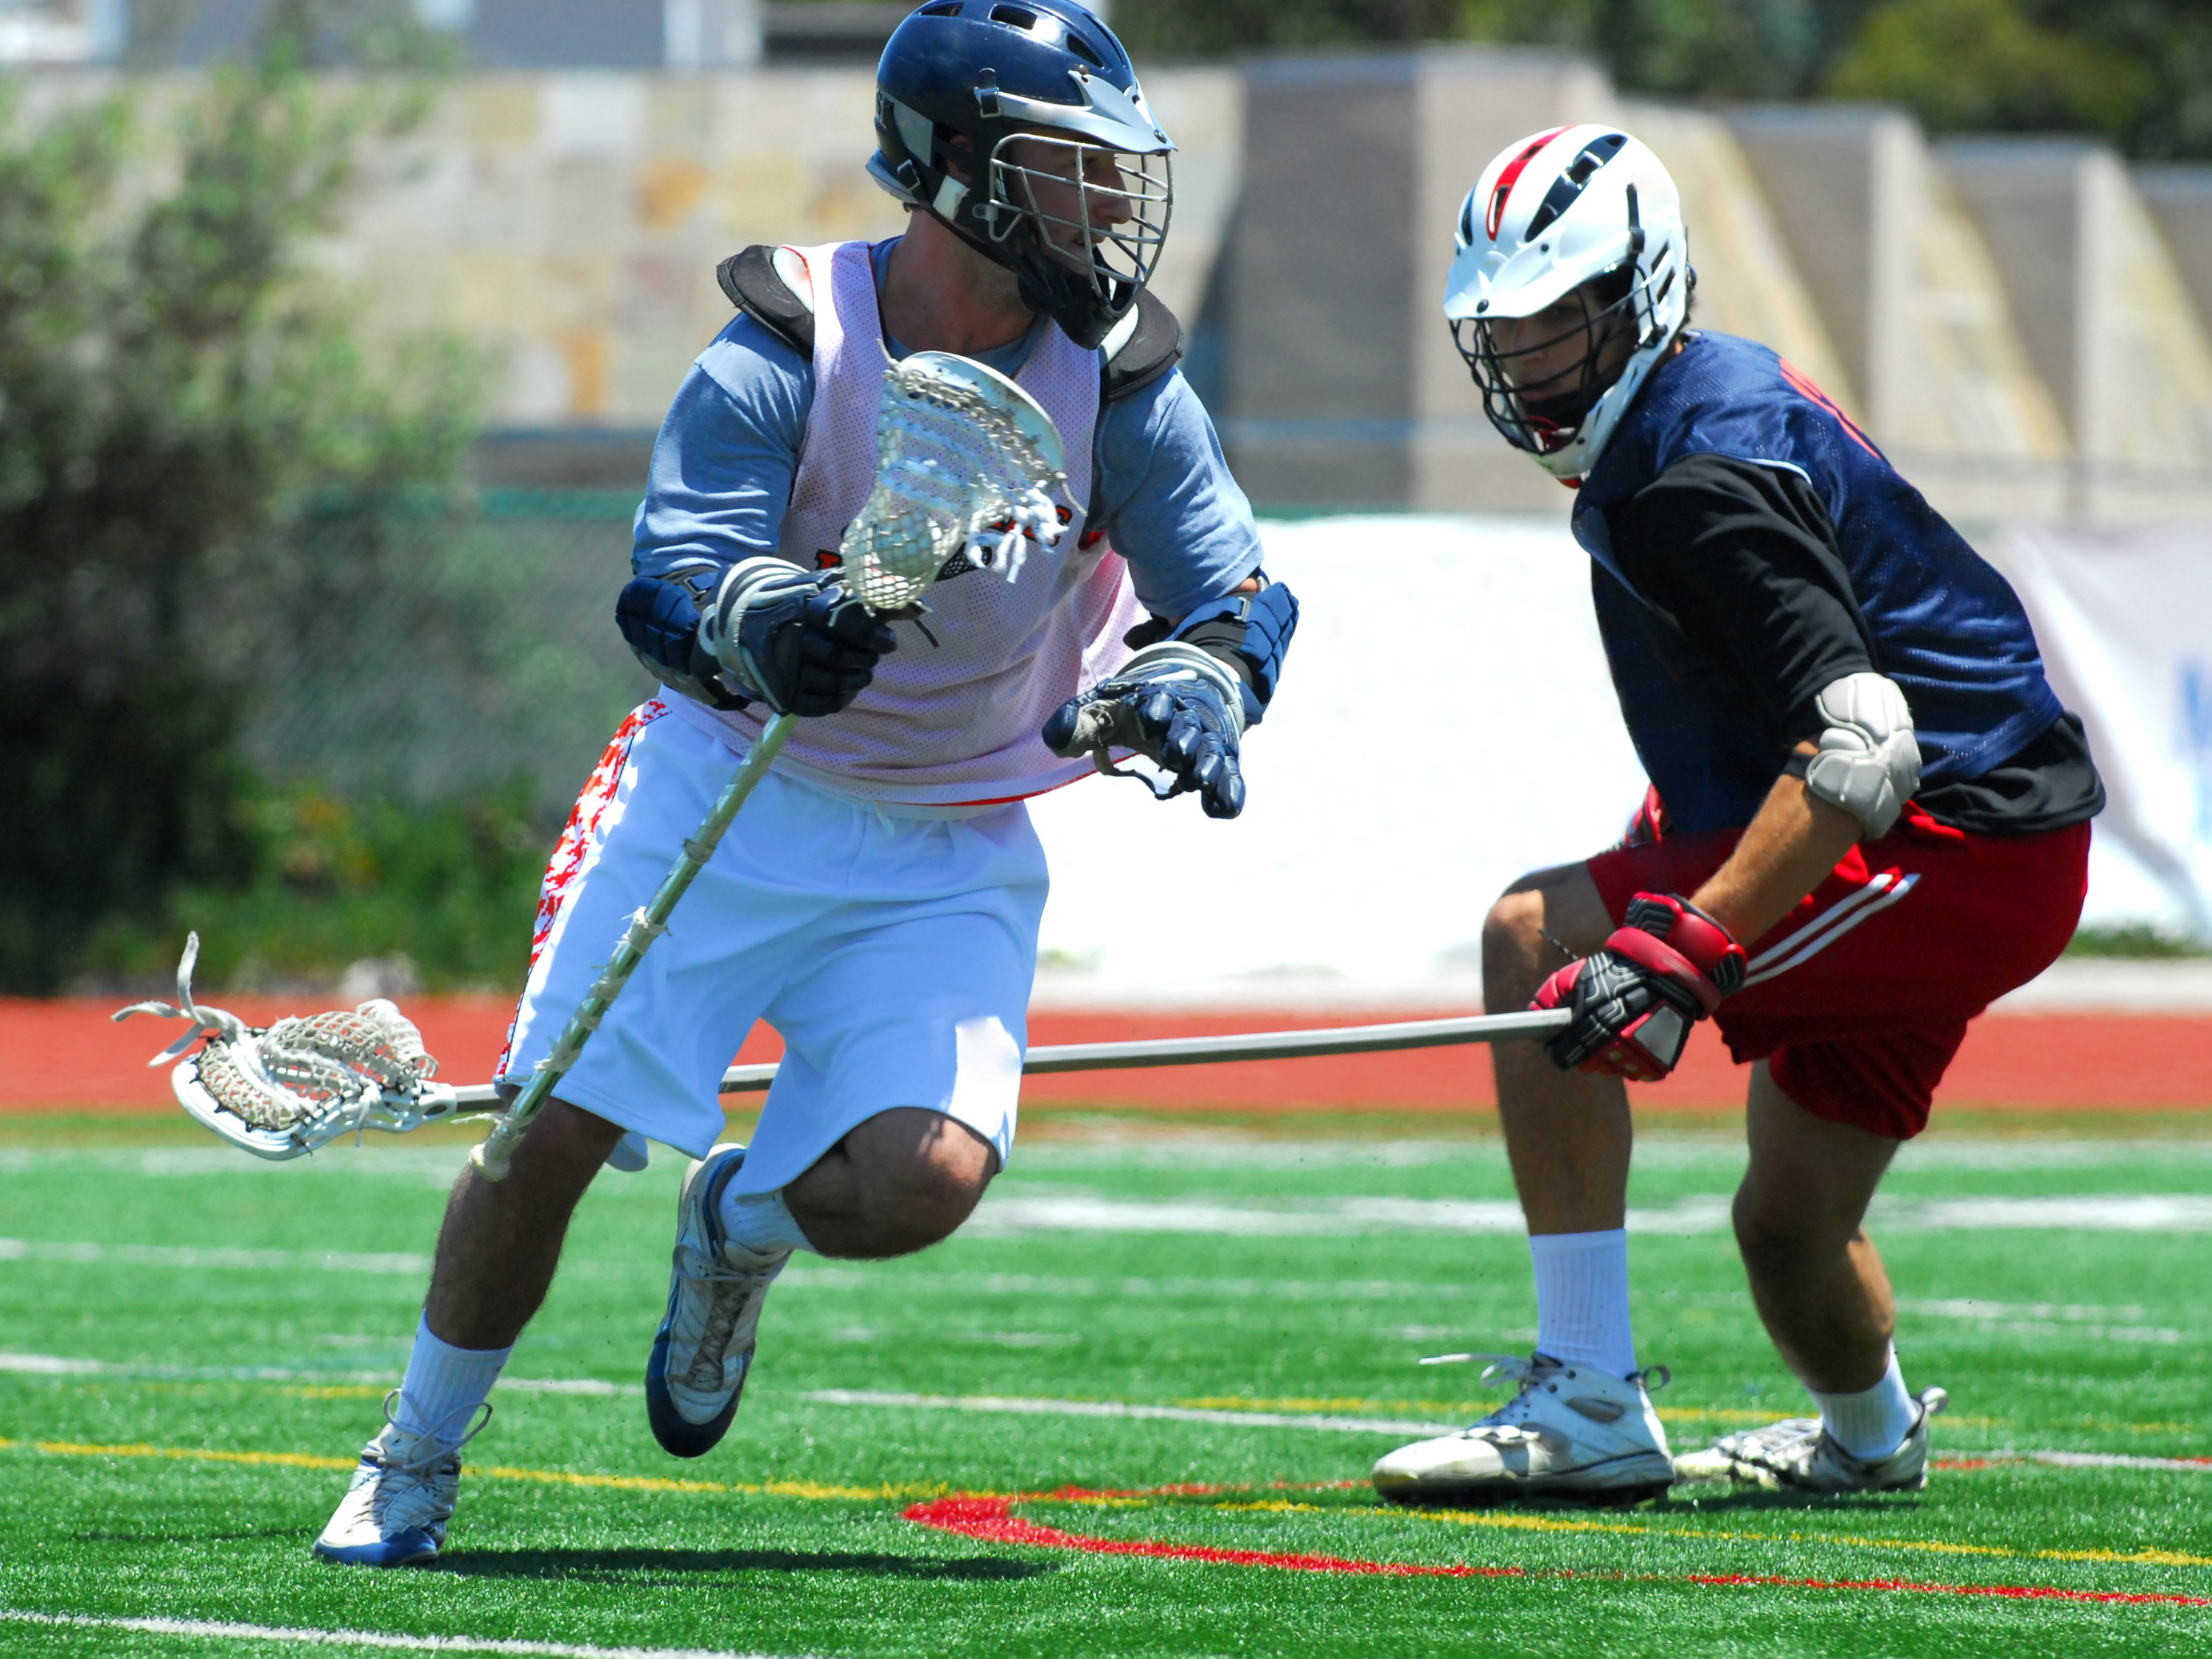 One lacrosse player chasing another